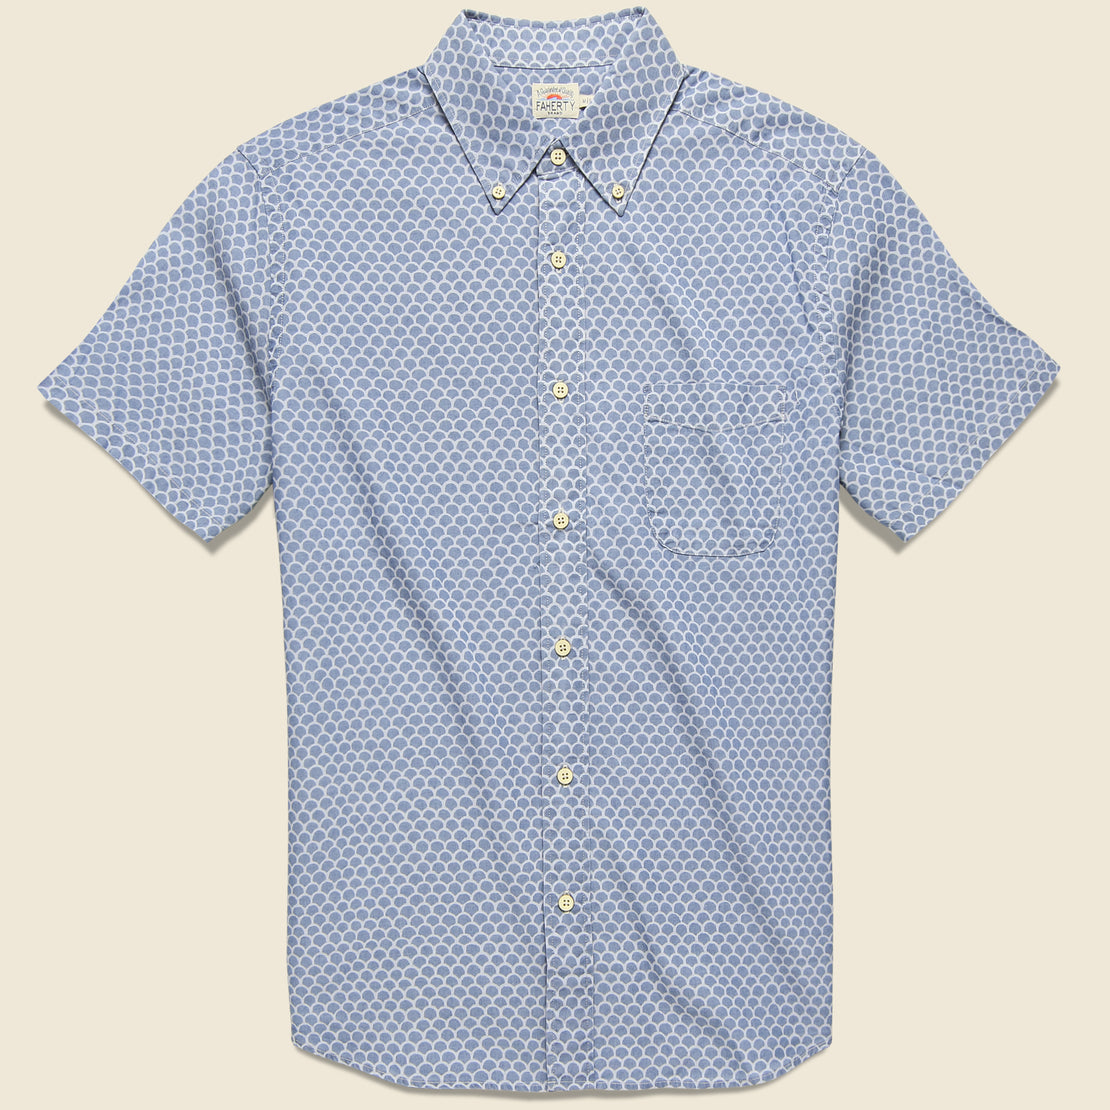 Faherty Pacific Shirt - Fishscale Redux